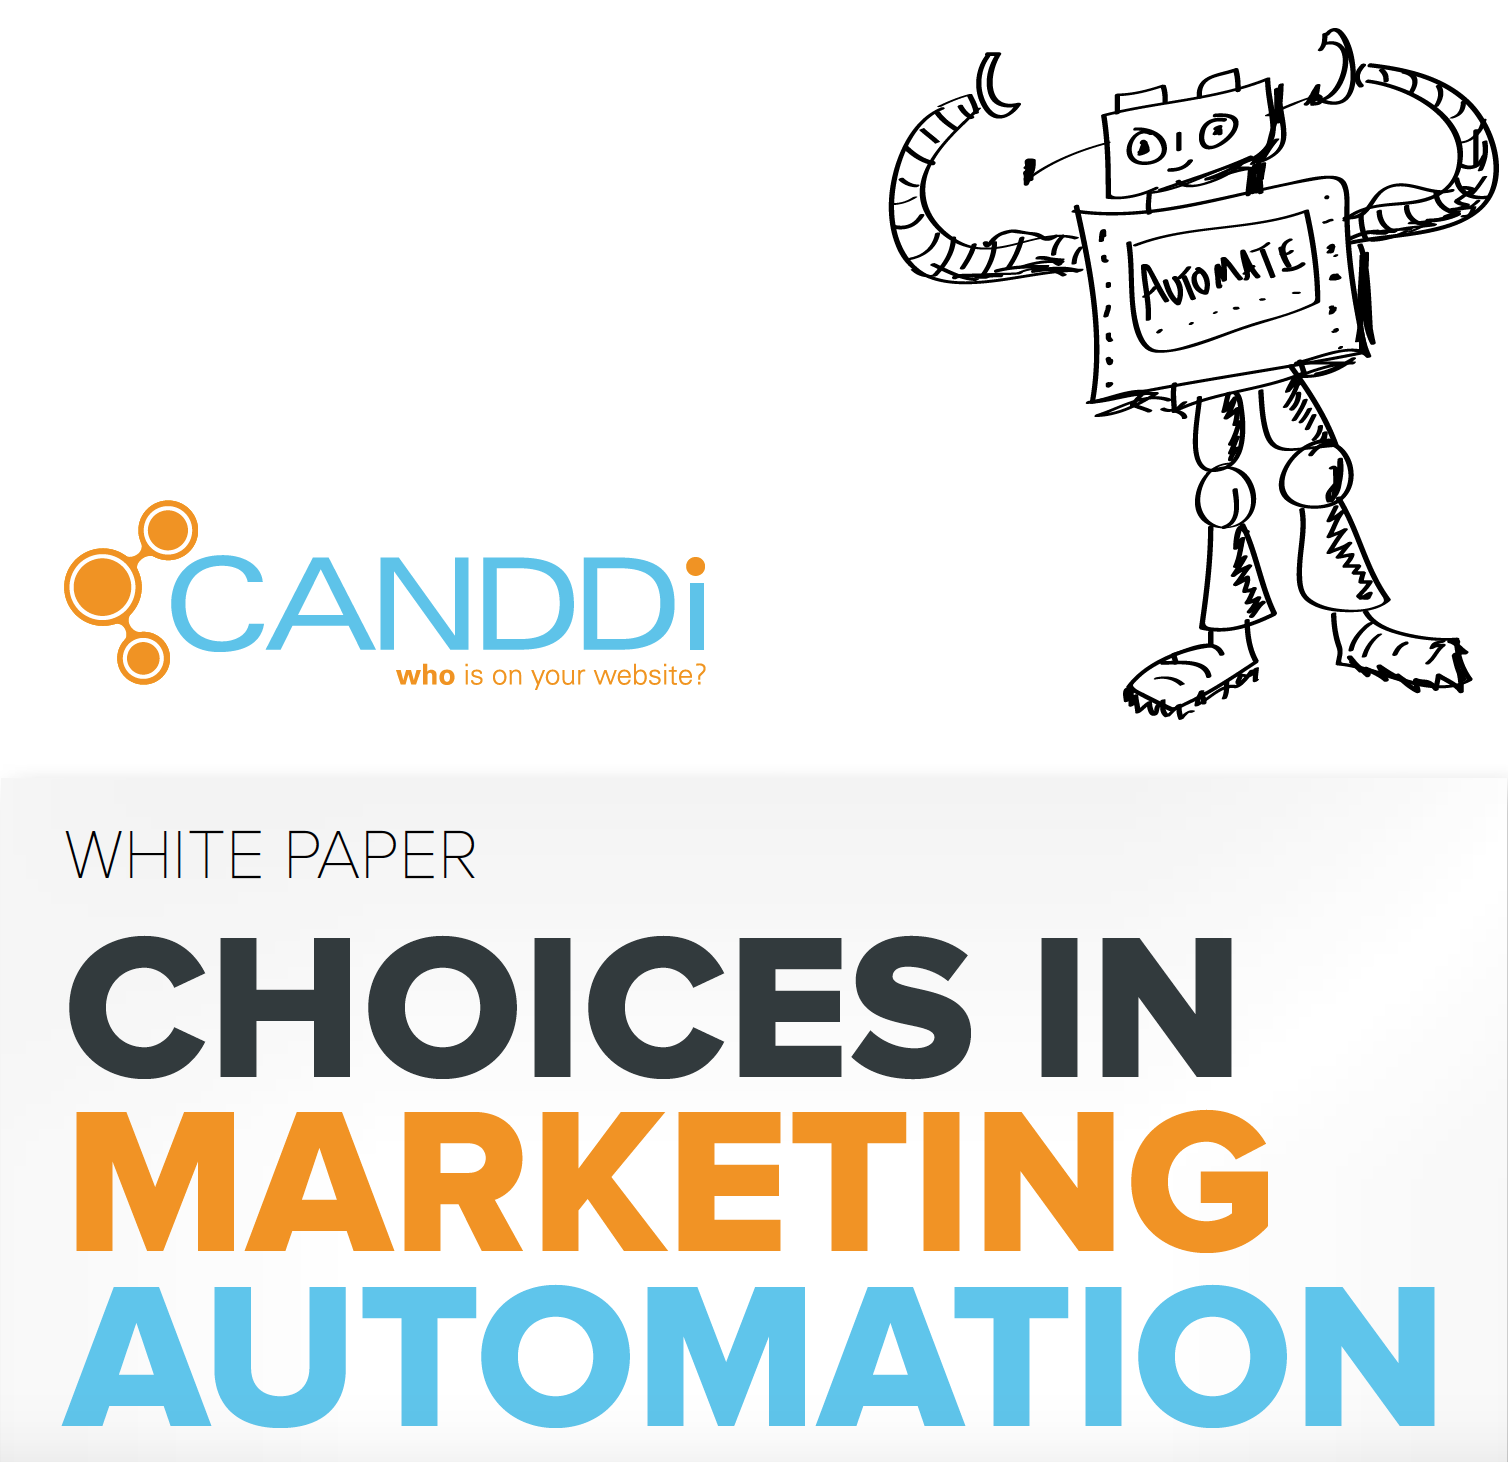 Choices in Marketing Automation